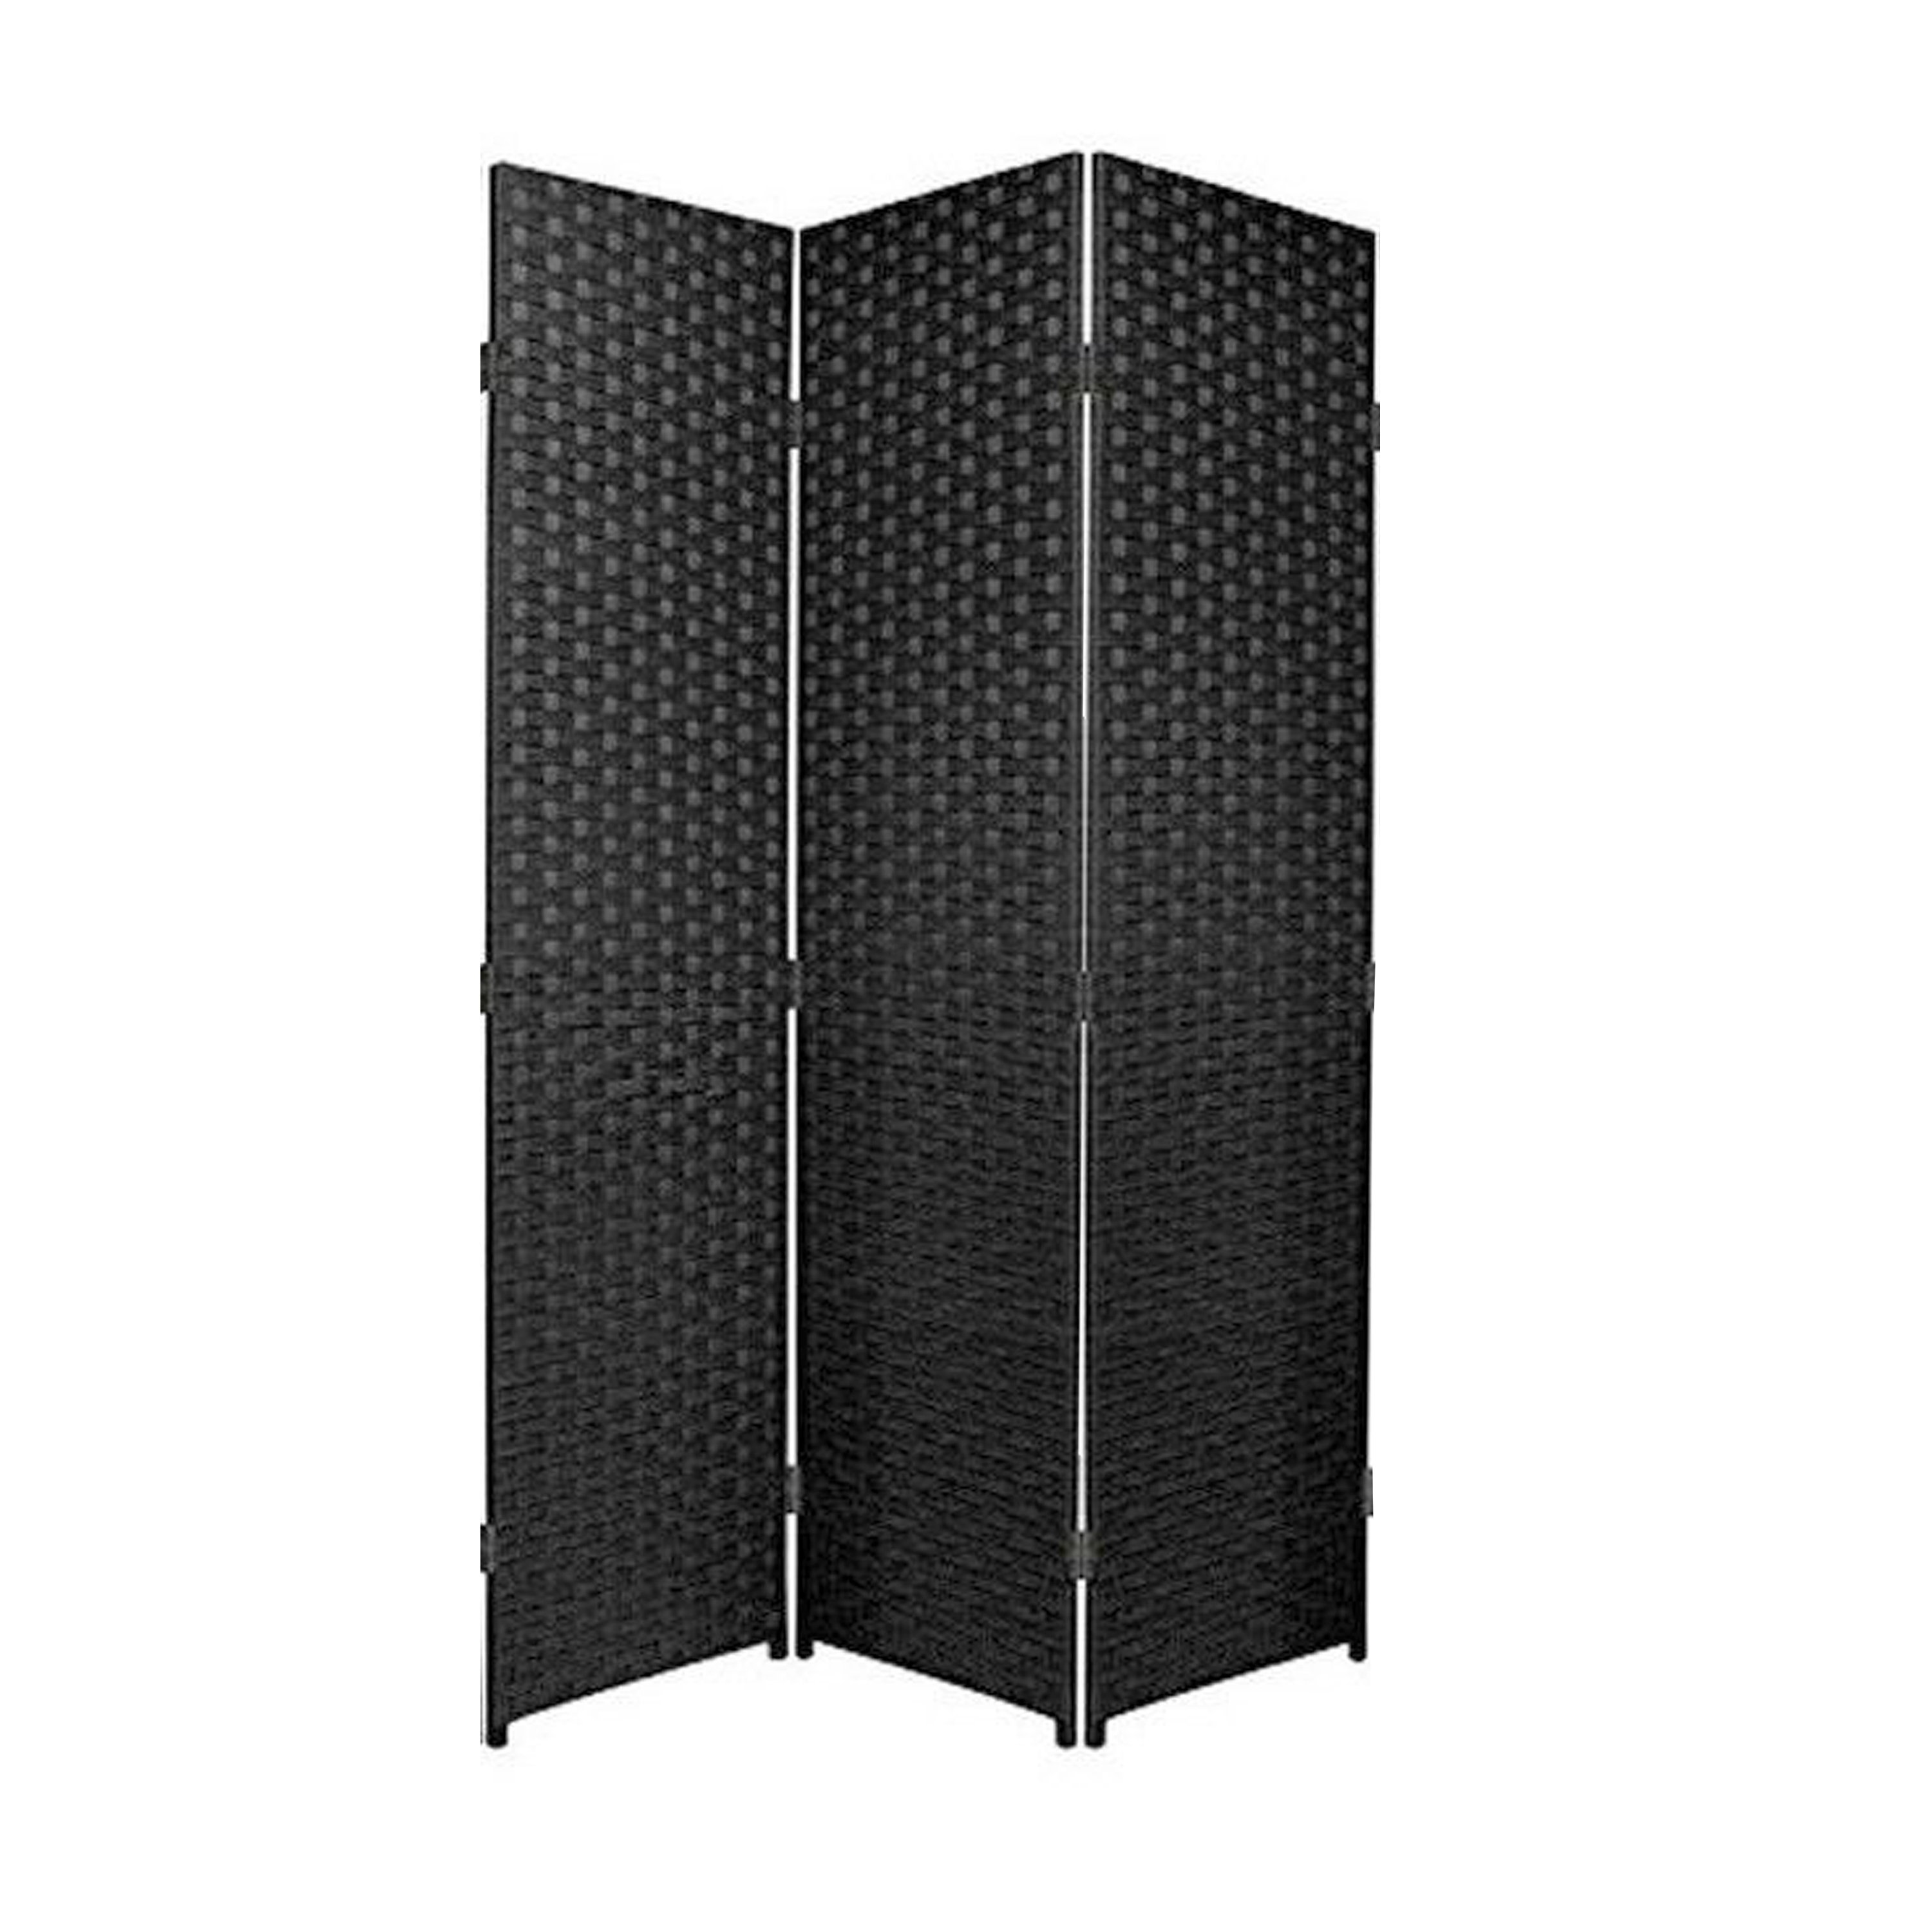 room divider screen folding paravent partition wall panel privacy furniture ebay. Black Bedroom Furniture Sets. Home Design Ideas